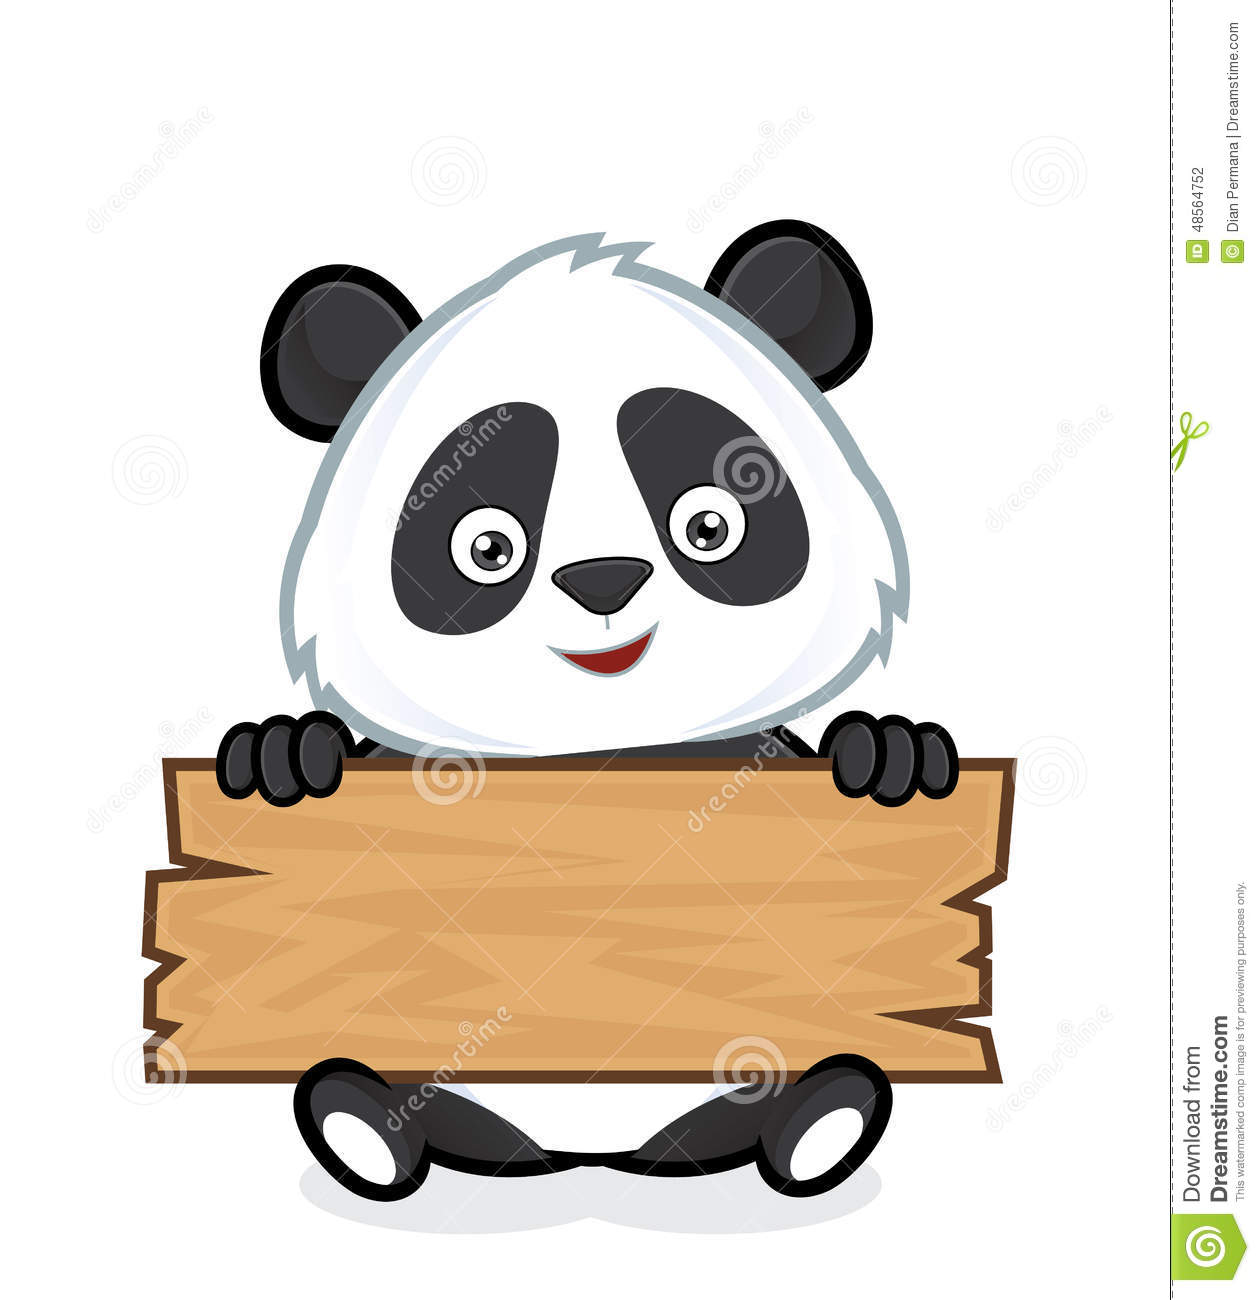 clipart panda website - photo #33